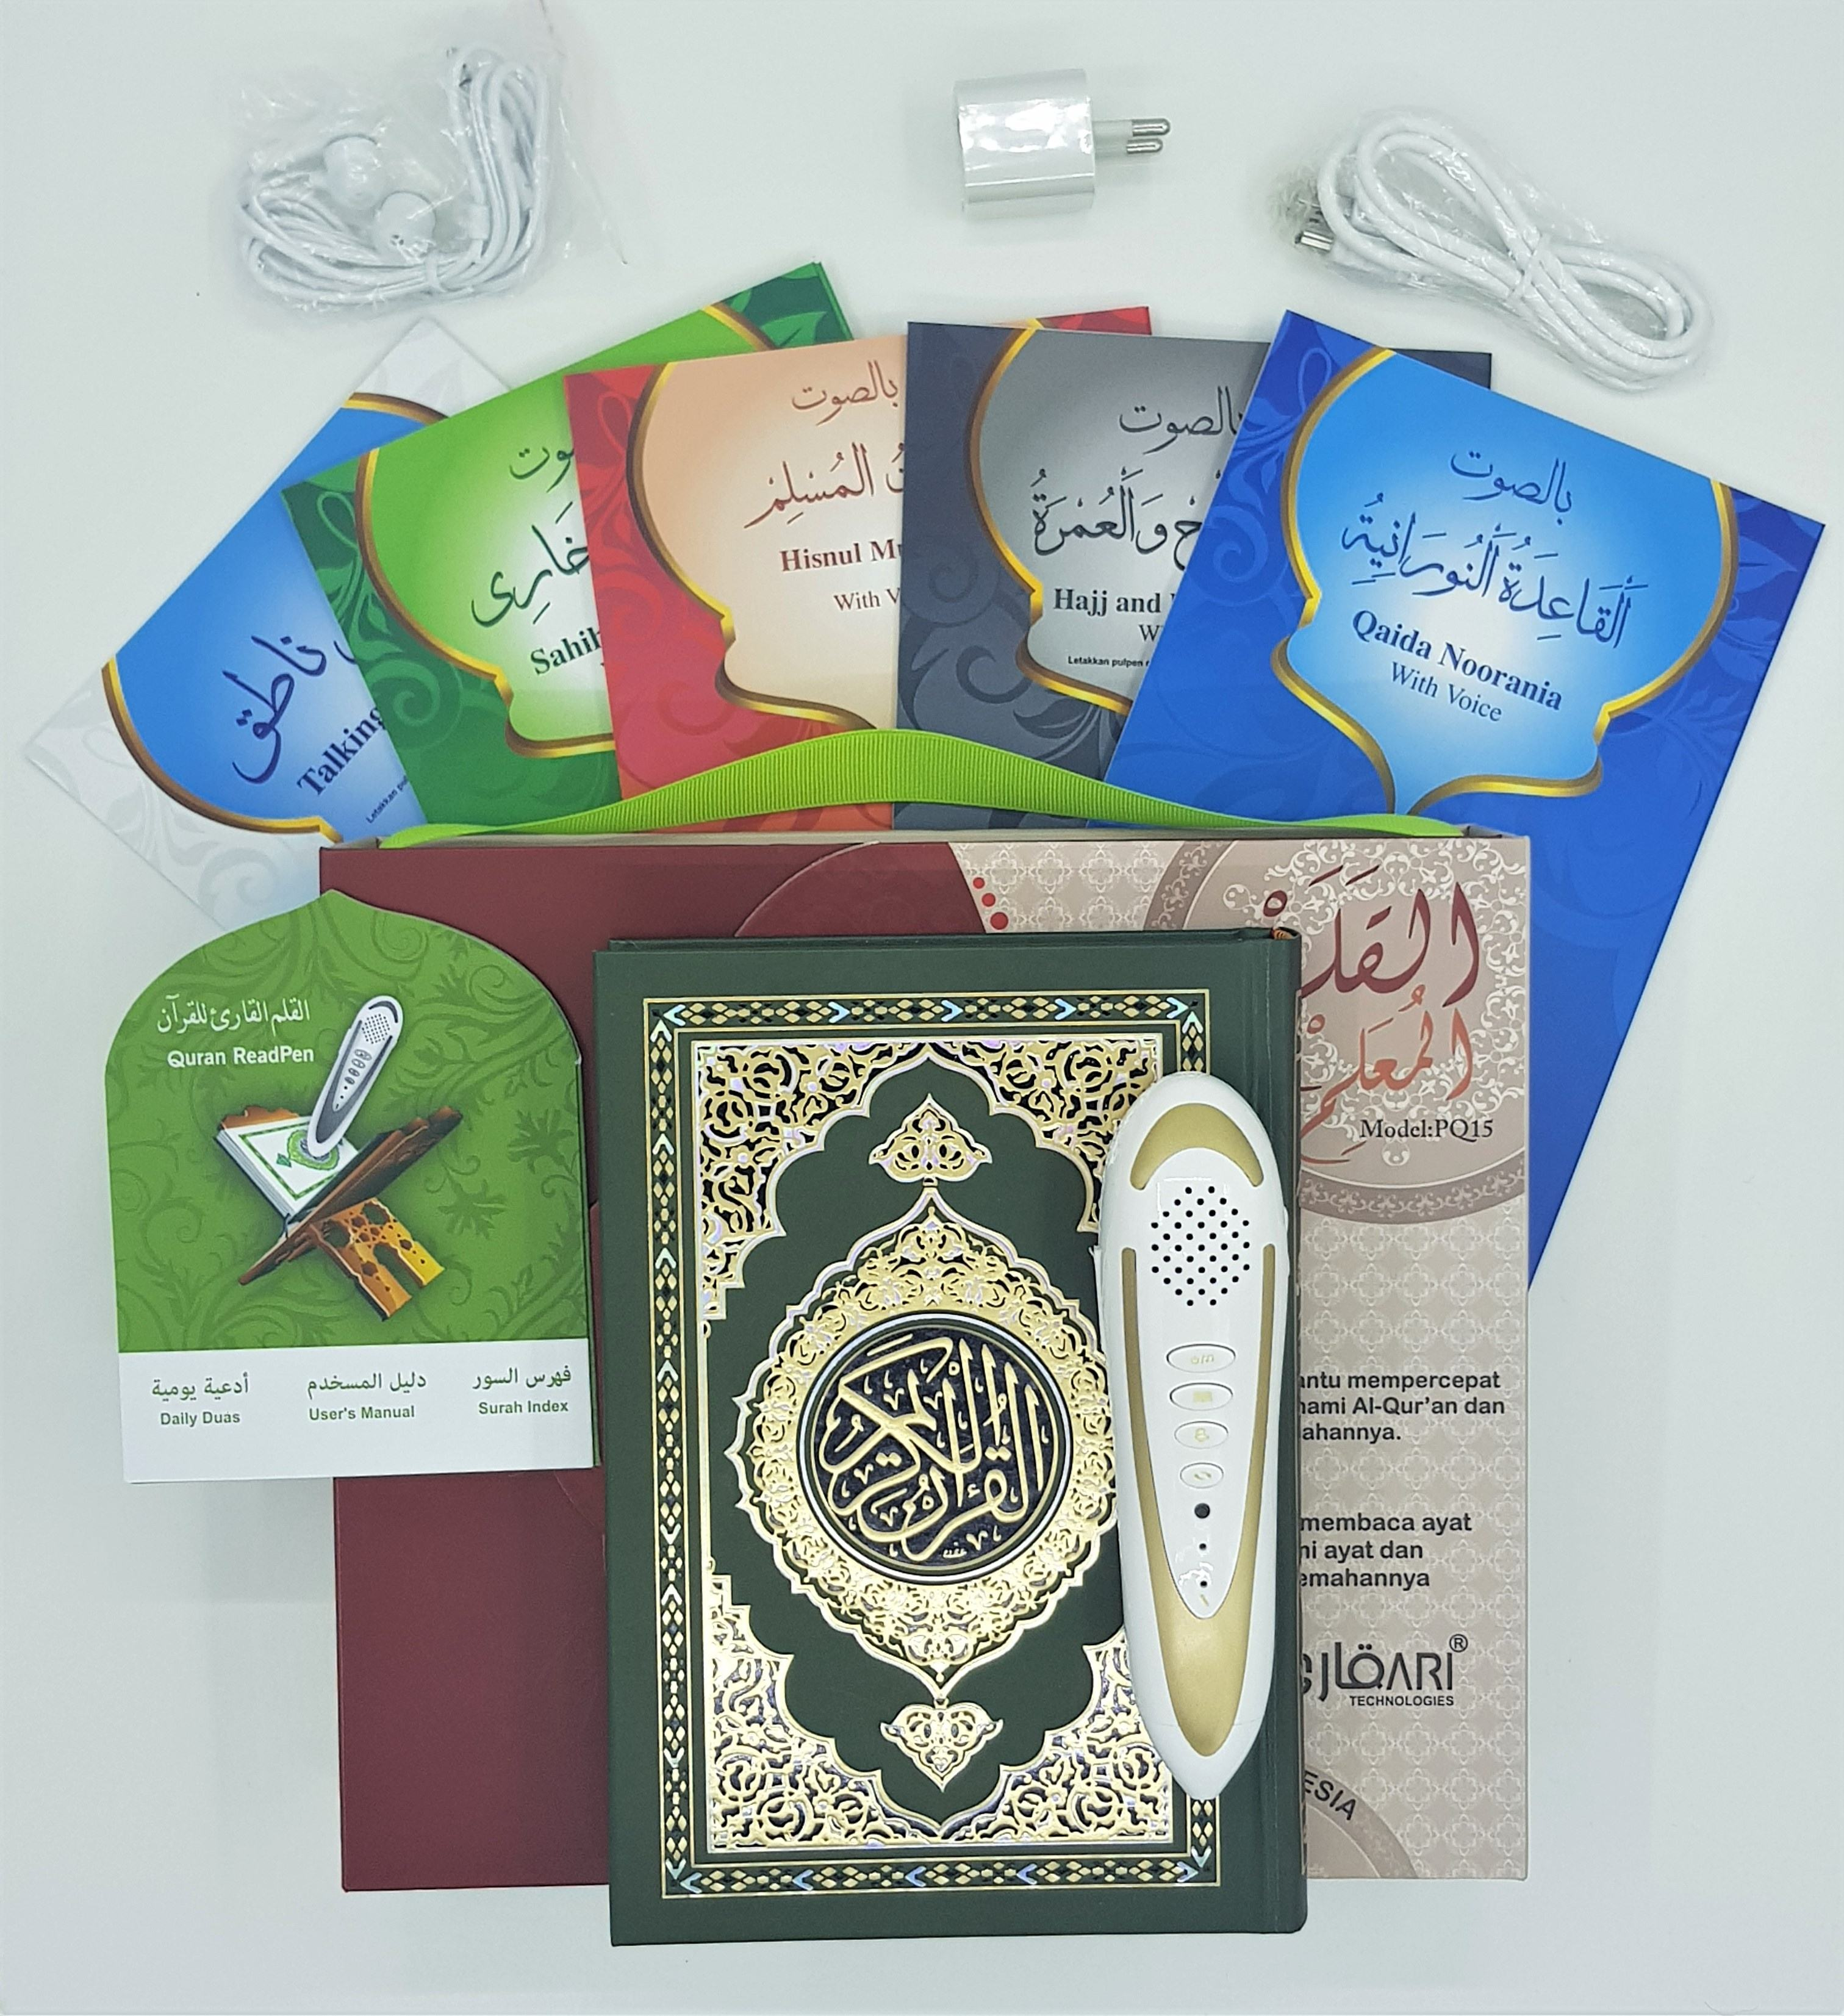 Quran Read pen best design for Indonesia and Malaysia certified from LPMQ